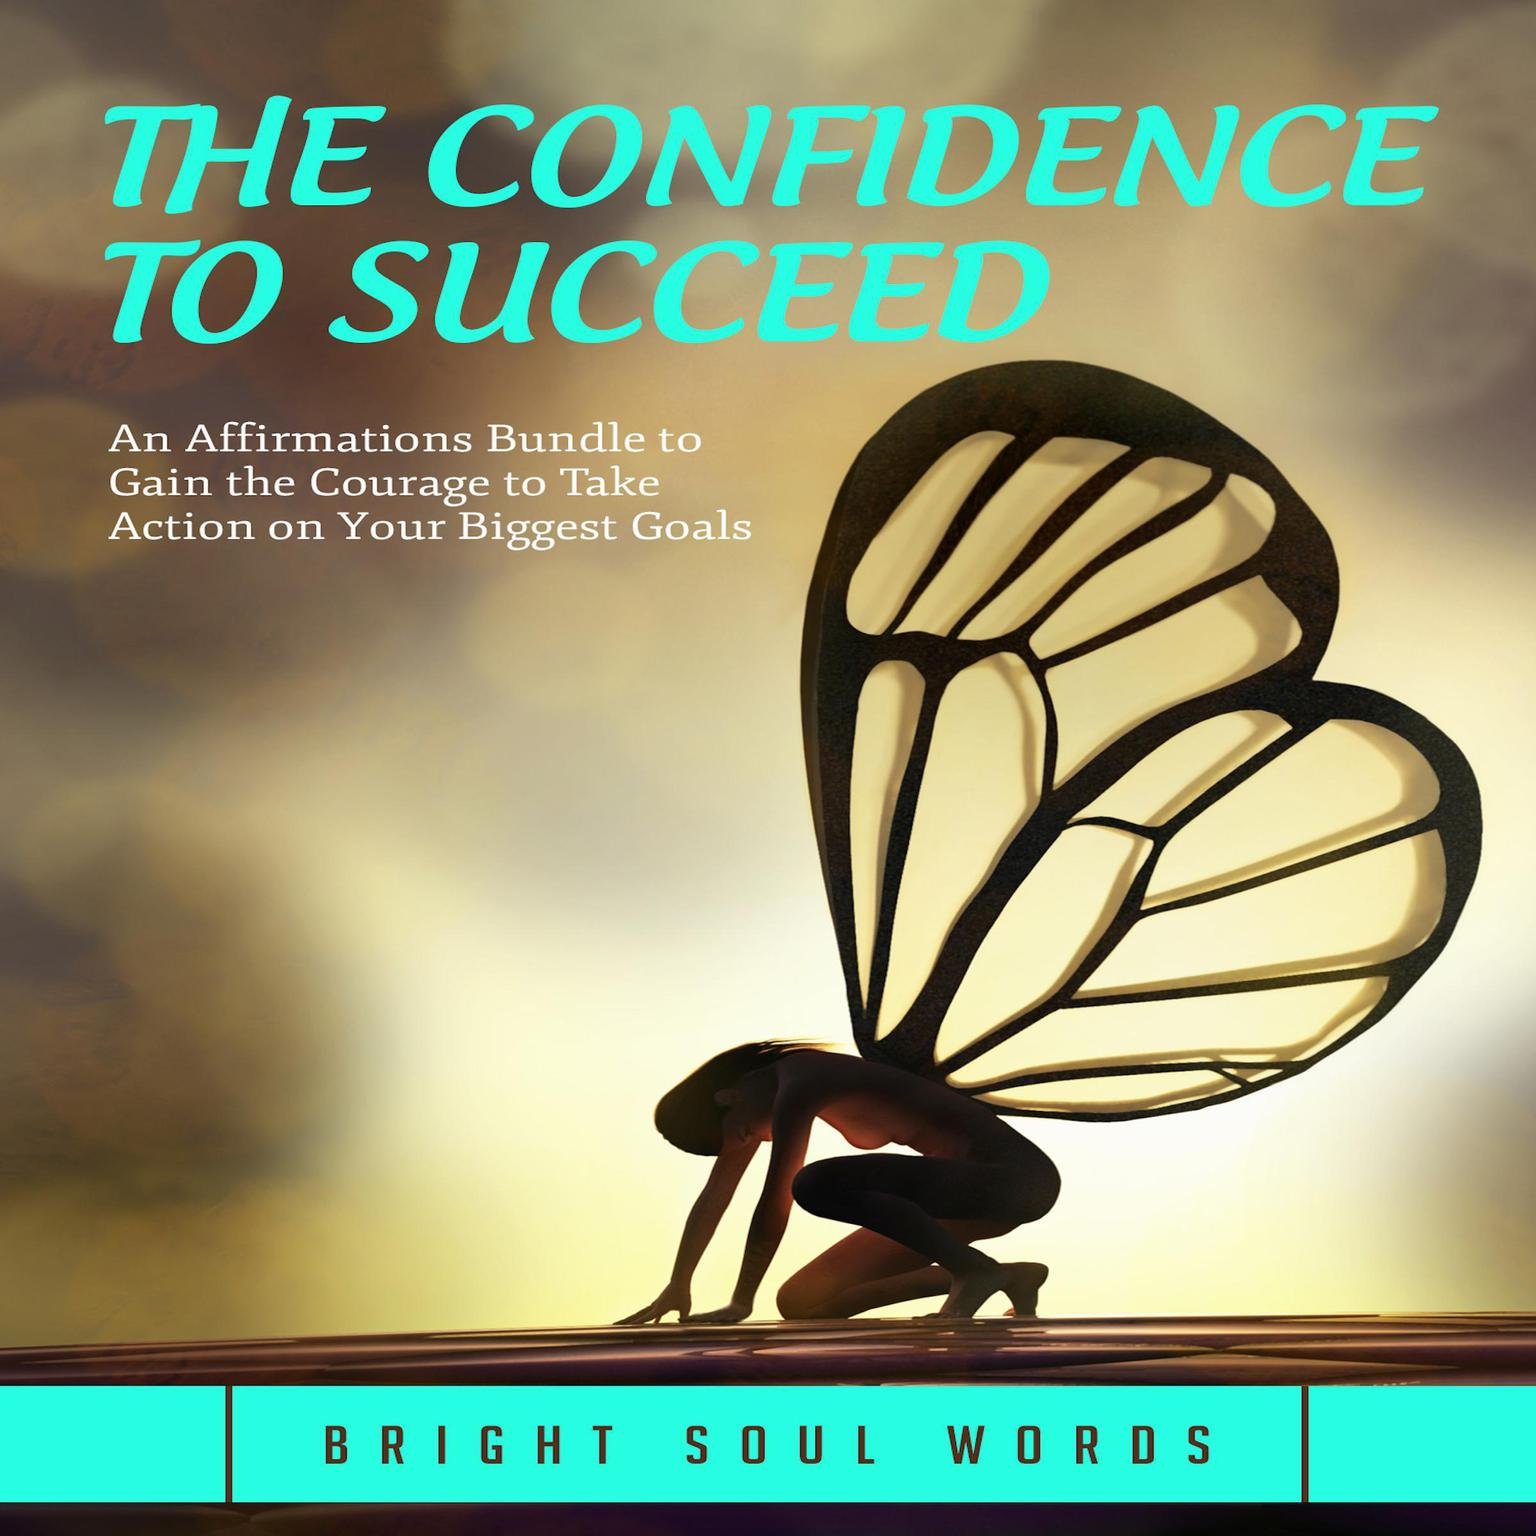 The Confidence to Succeed: An Affirmations Bundle to Gain the Courage to Take Action on Your Biggest Goals Audiobook, by Bright Soul Words